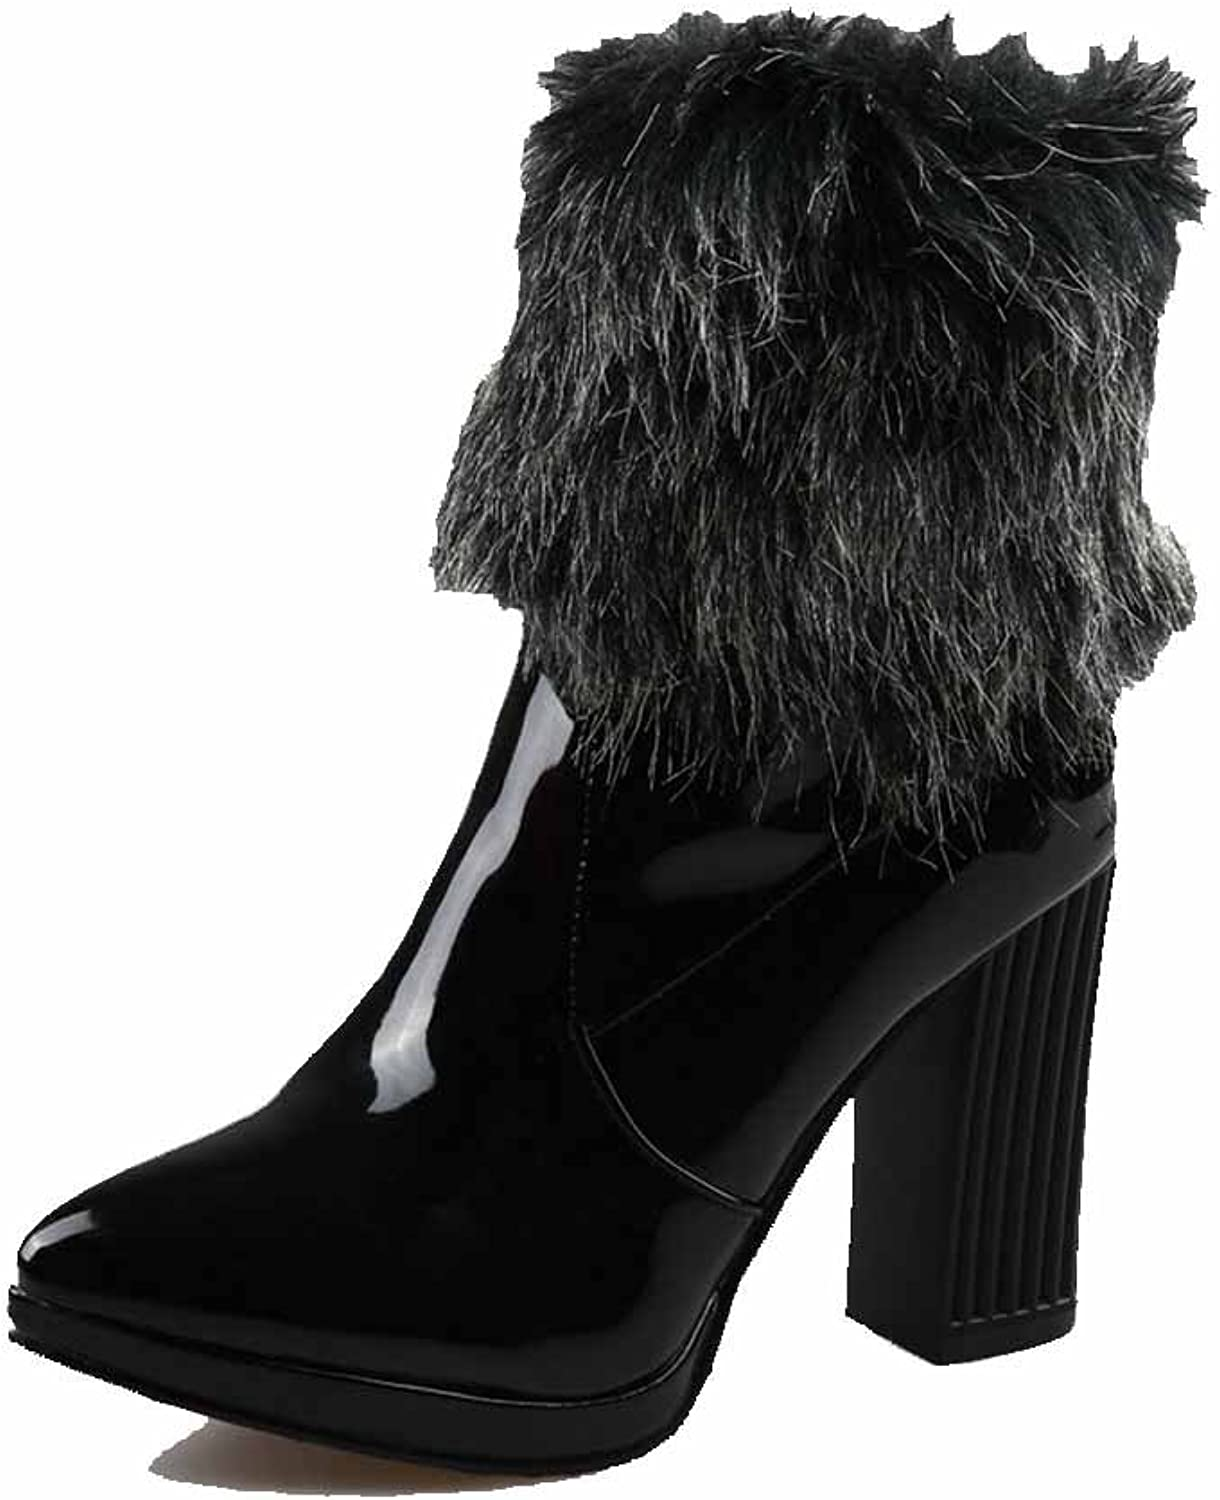 AllhqFashion Women's High-Heels Patent Leather Low-top Solid Pull-on Boots